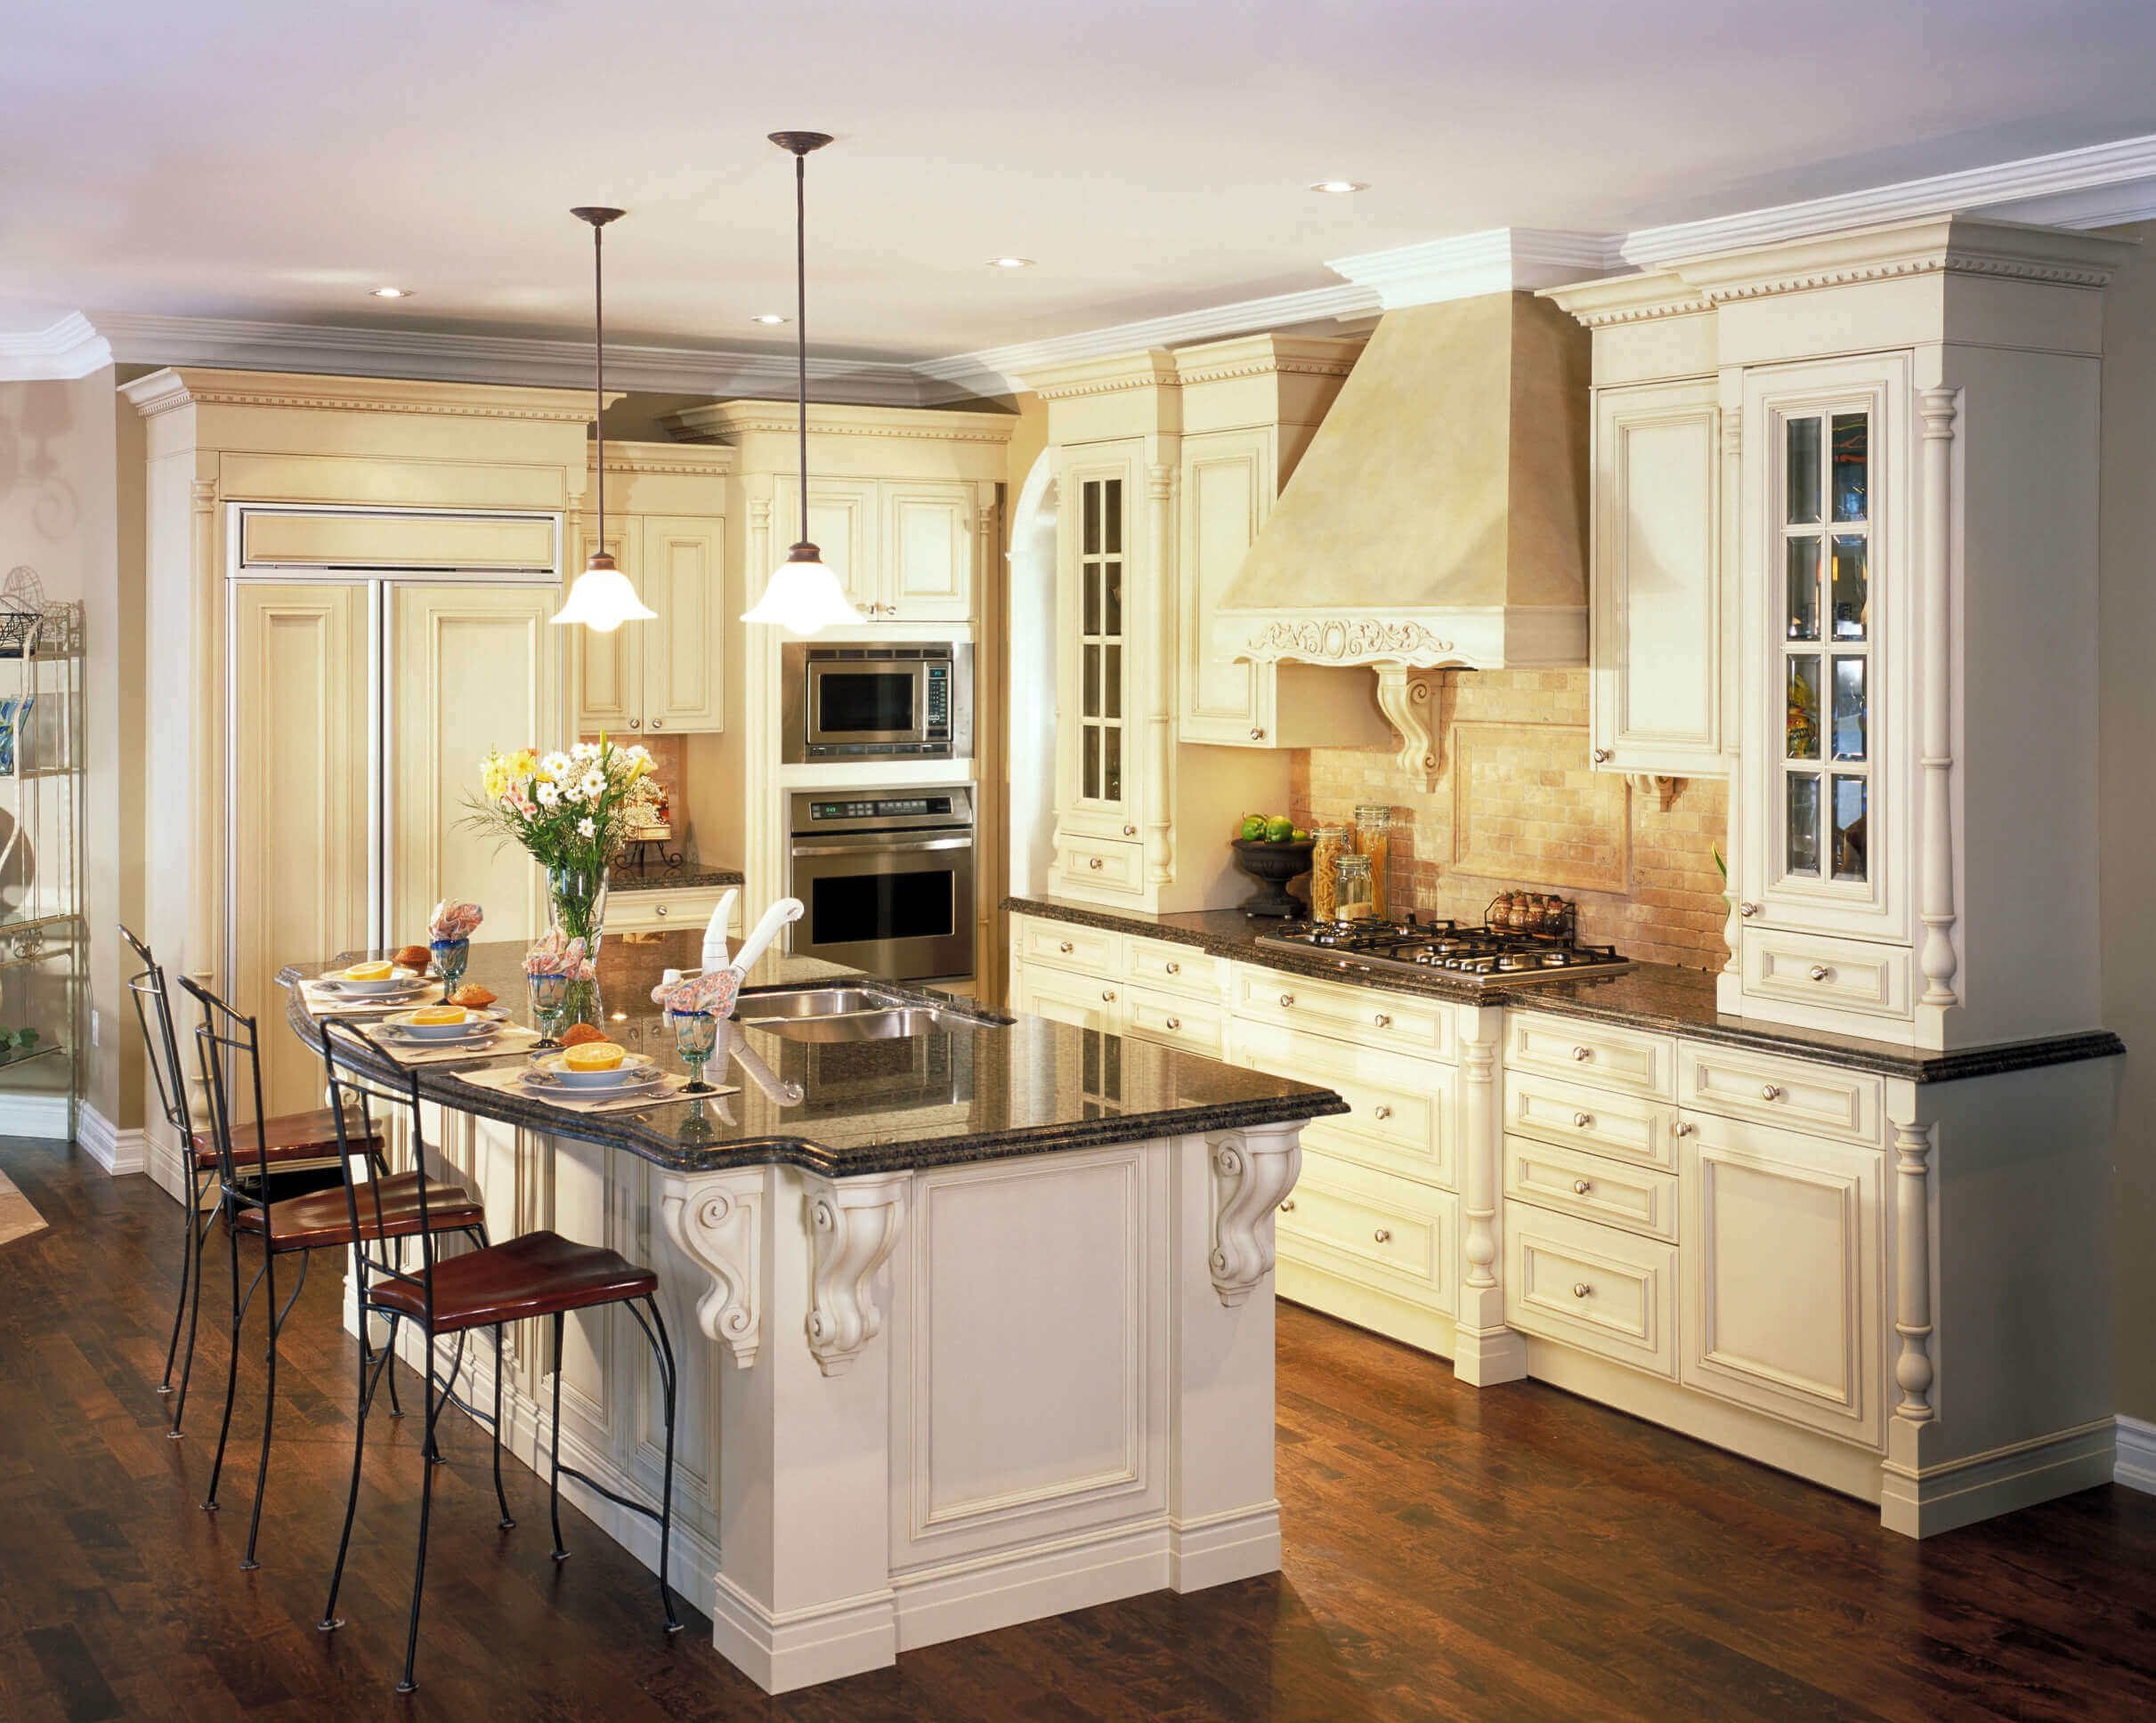 Contemporary Pendant Lighting for Kitchen